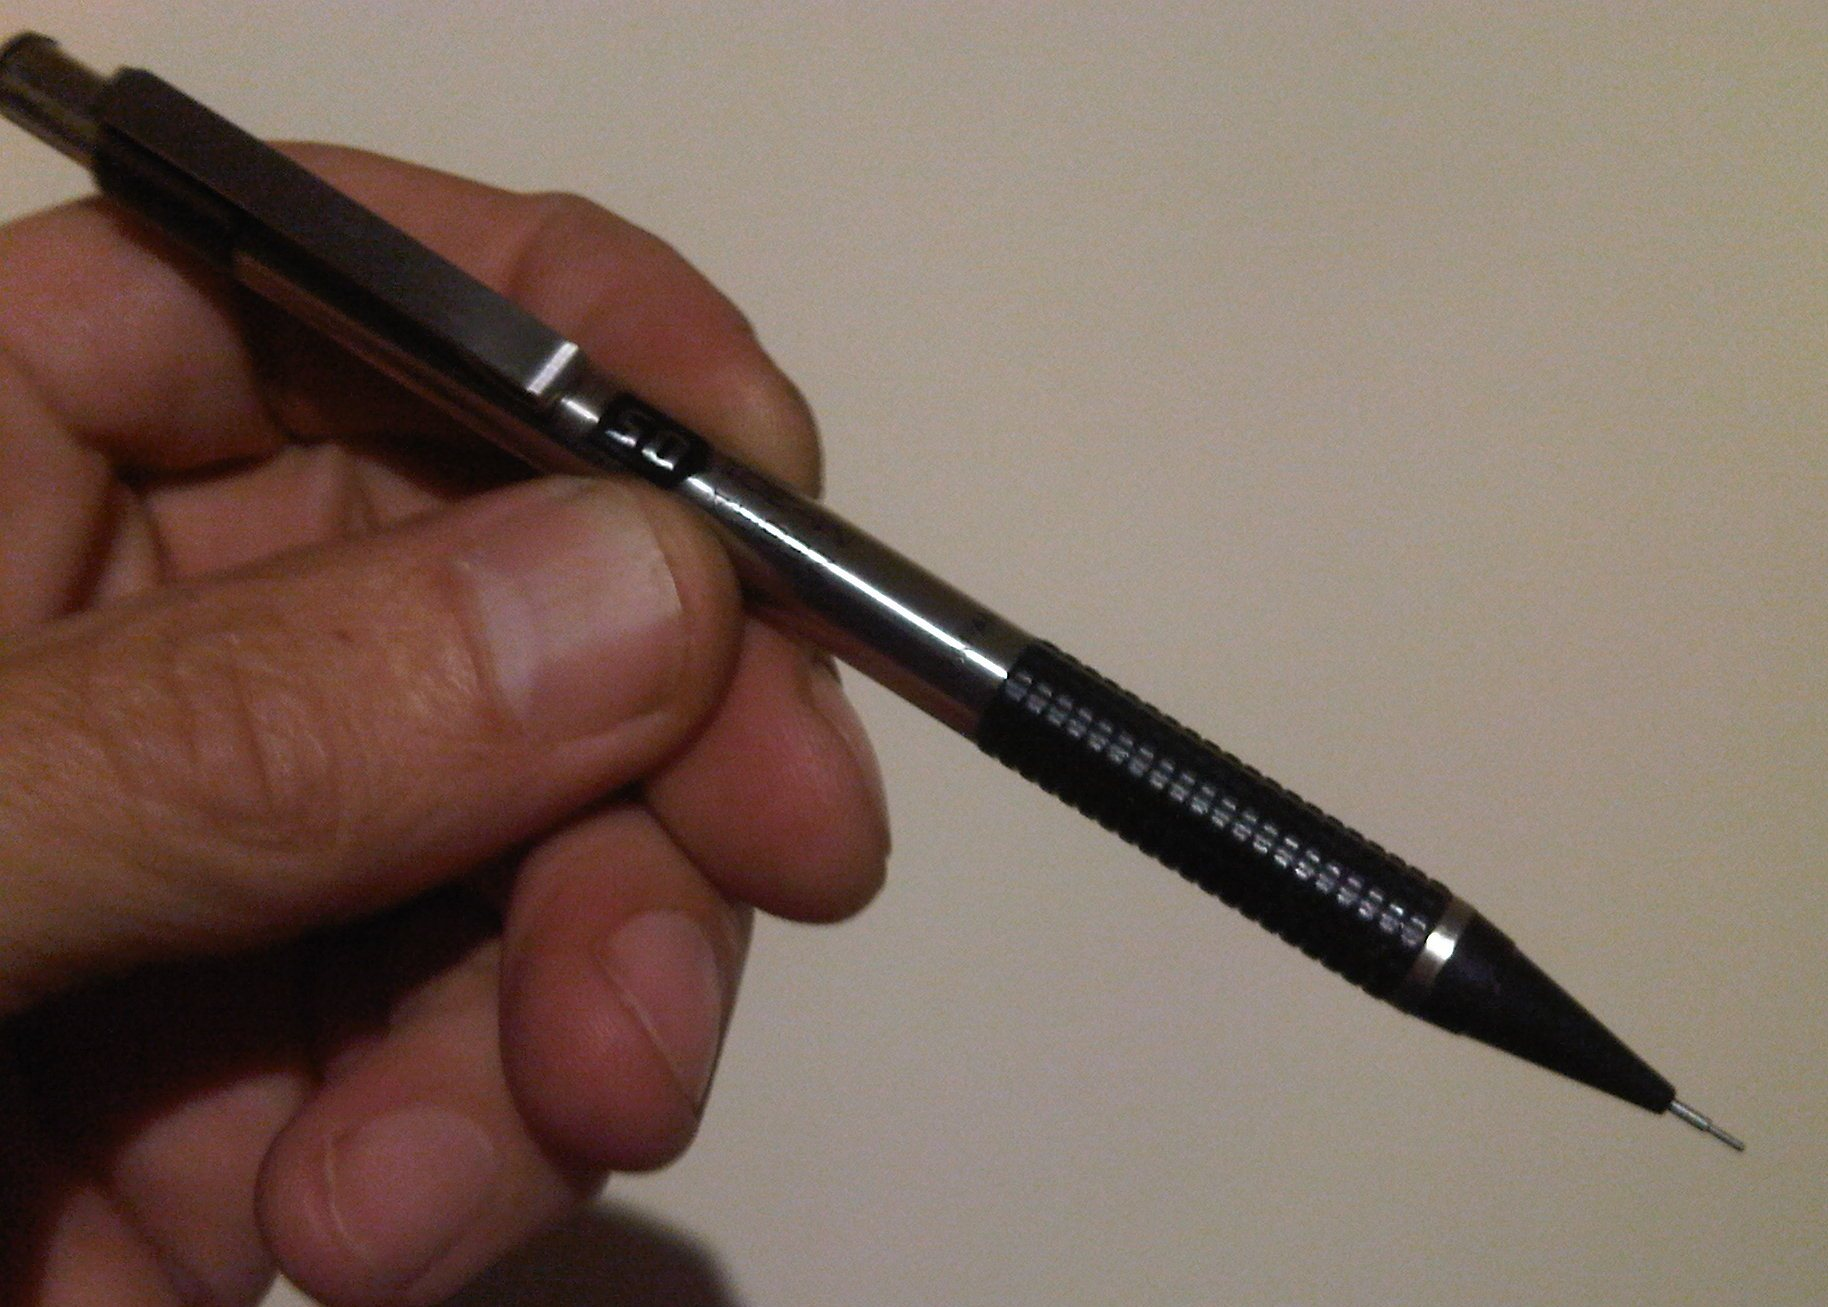 FREE Stainless Steel Mechanical Propelling Pencil with eraser under top cap